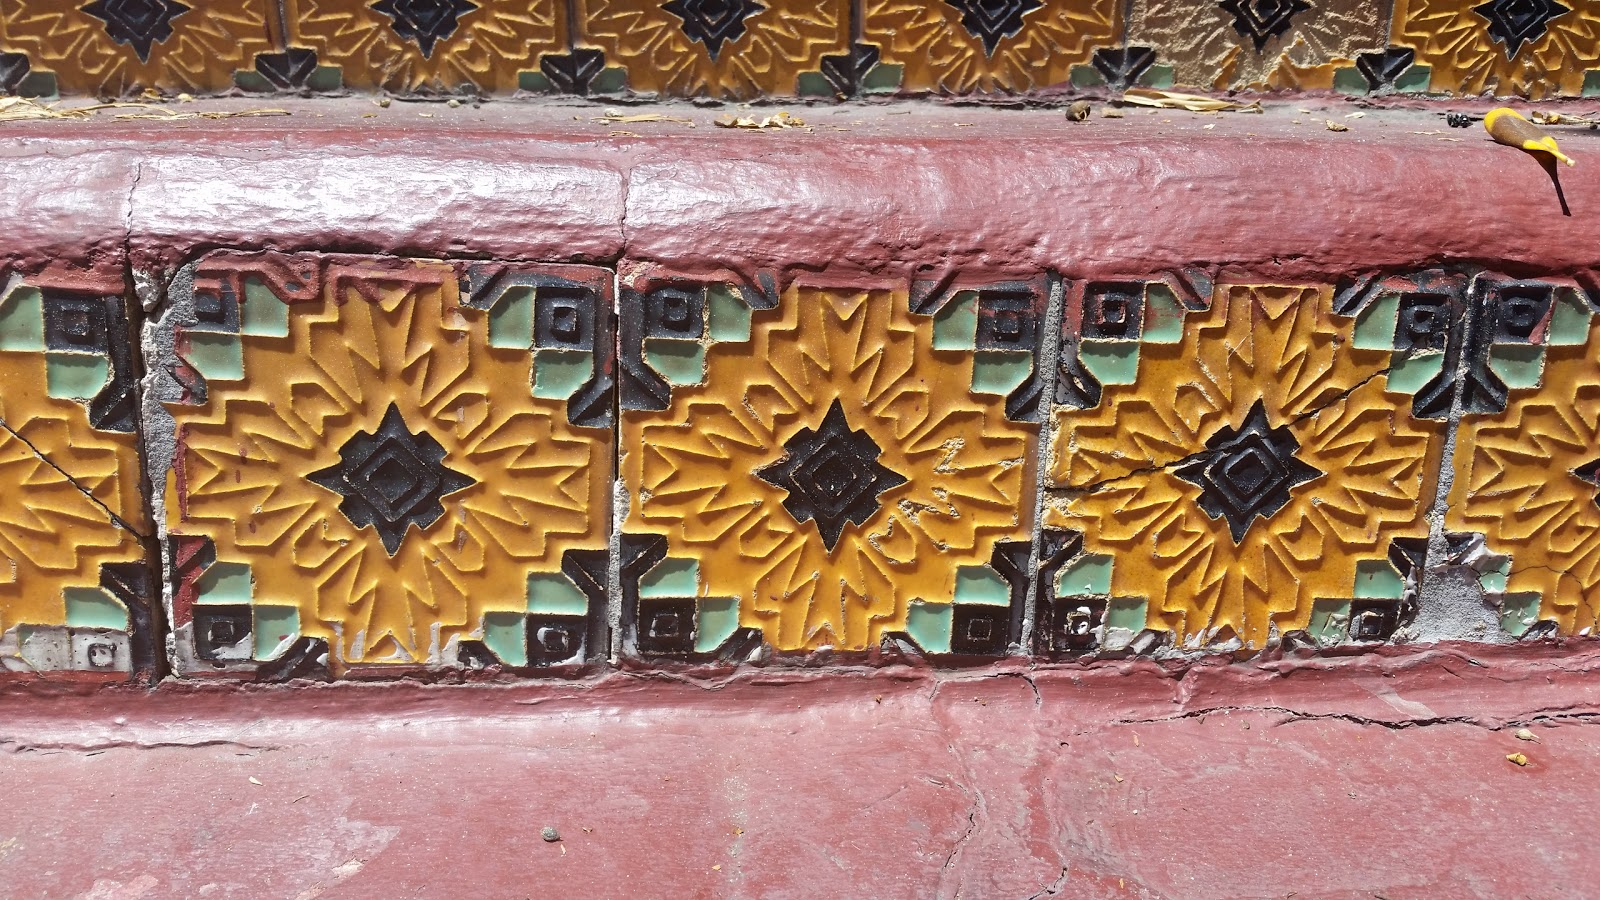 Detail of Sunflower Tiles on stair risers in Beverly Hills circa 1925.